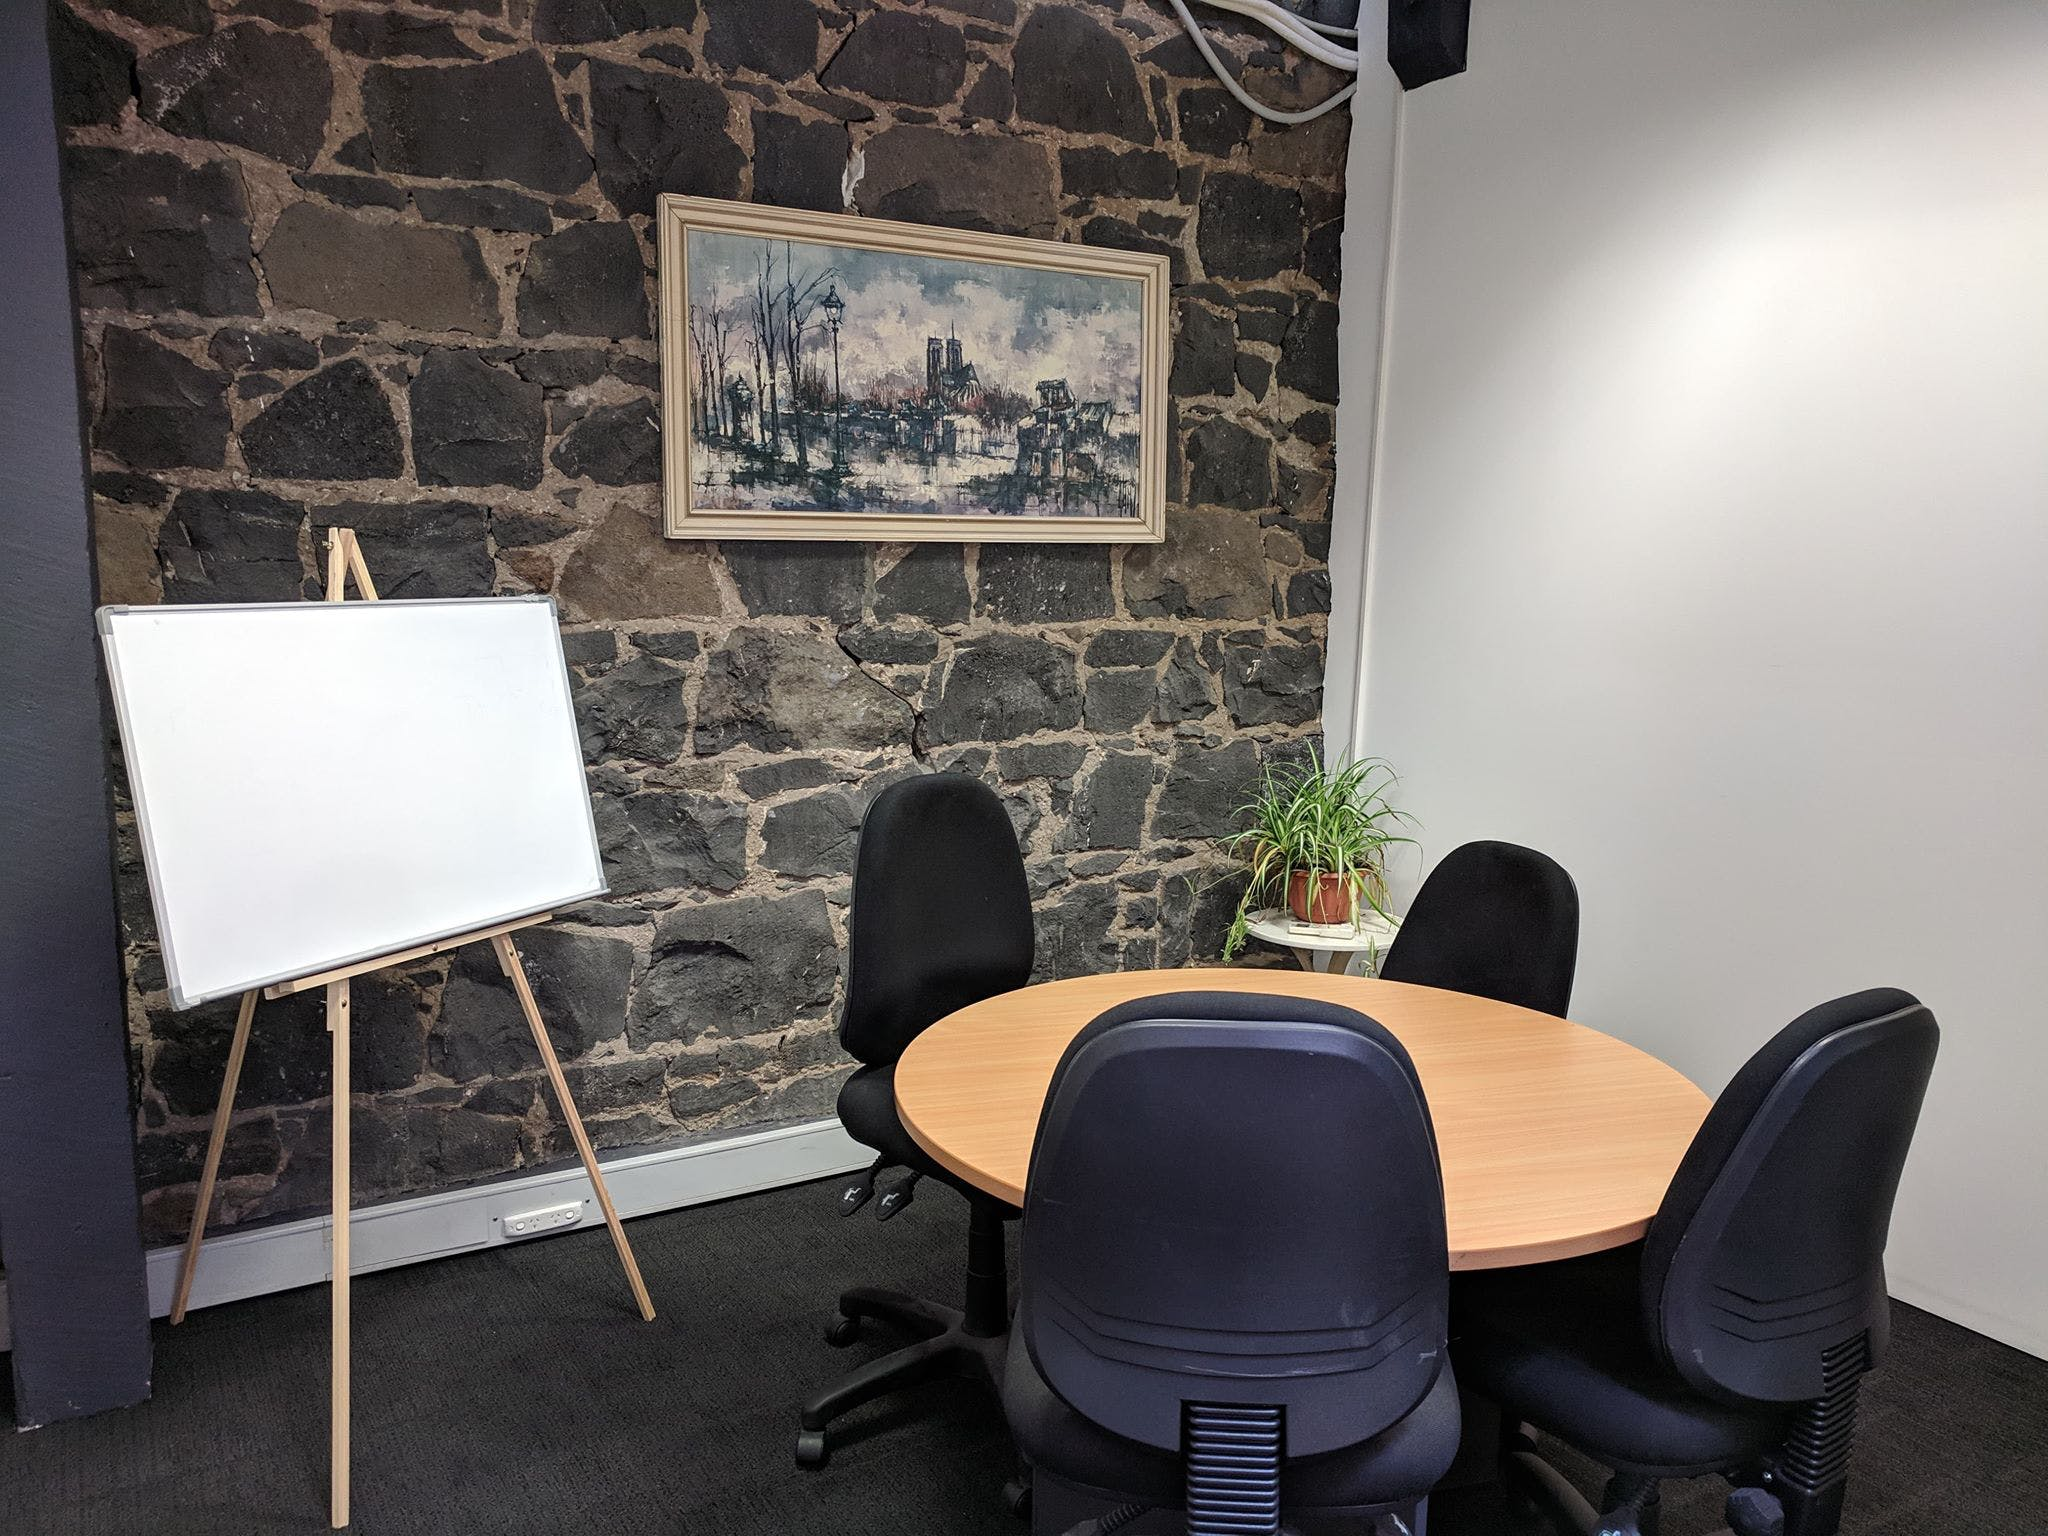 Meeting Room 1, meeting room at Natpost Business Centre, image 1